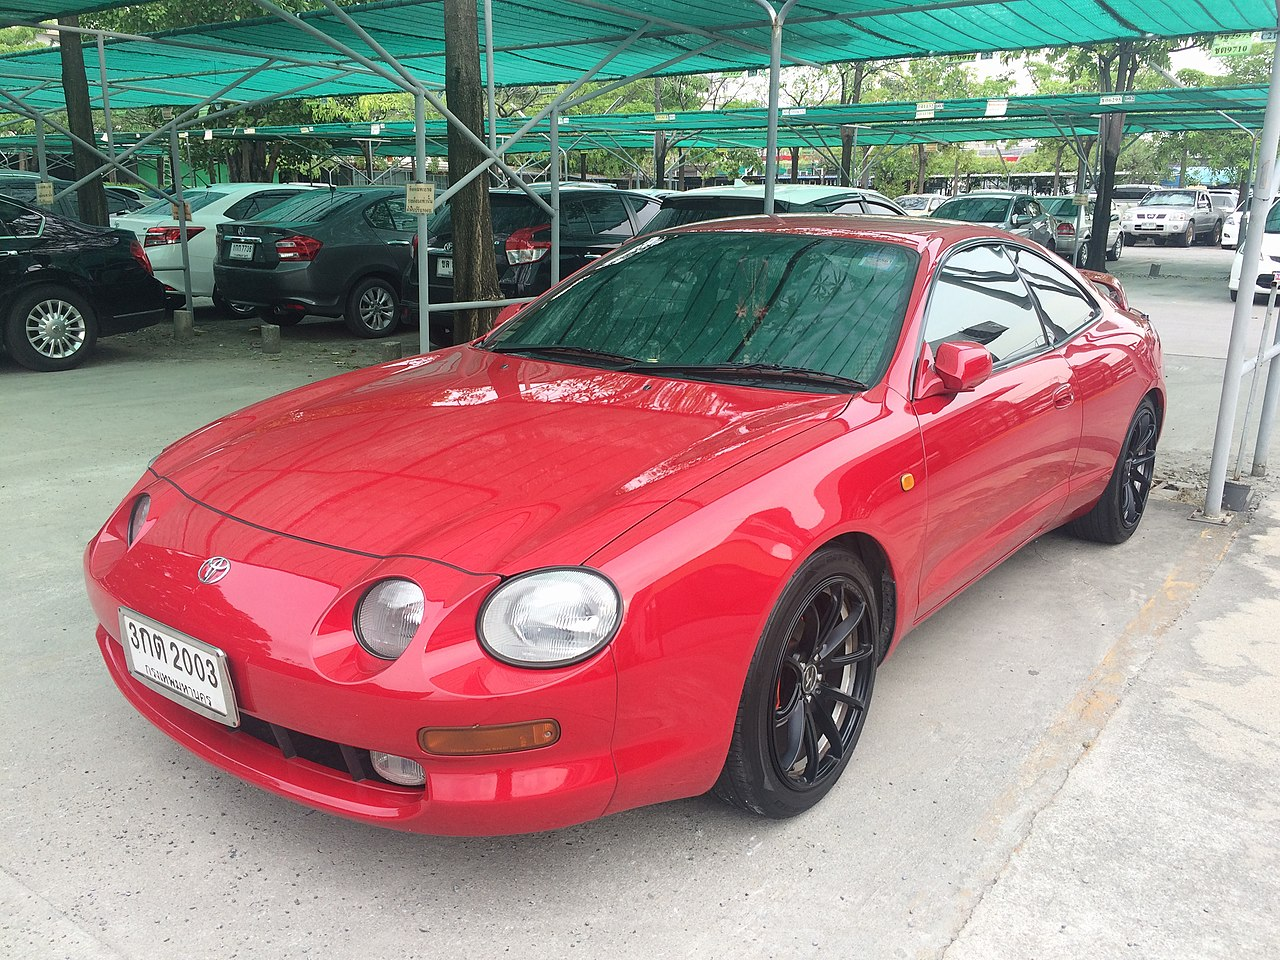 Toyota Celica ´1995, foto: Jirapat Chroenkeskij - vlastní dílo, CC0, https://commons.wikimedia.org/w/index.php?curid=70370562